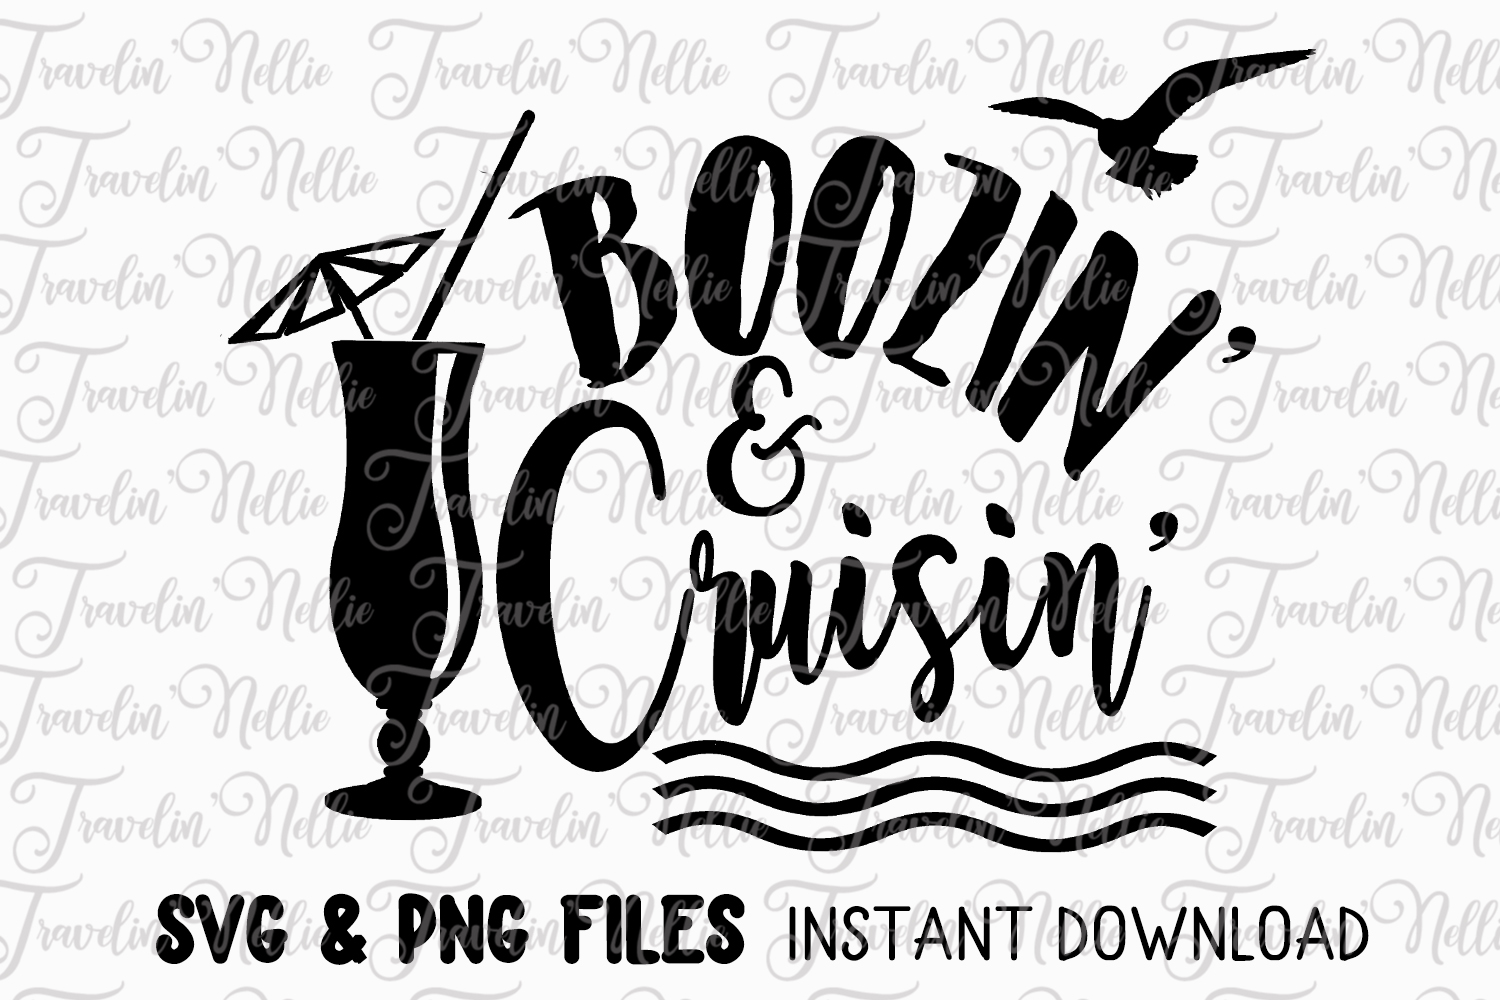 Boozin' Cruisin' SVG Cruise Vacation Tropical Drinking Humor example image 1